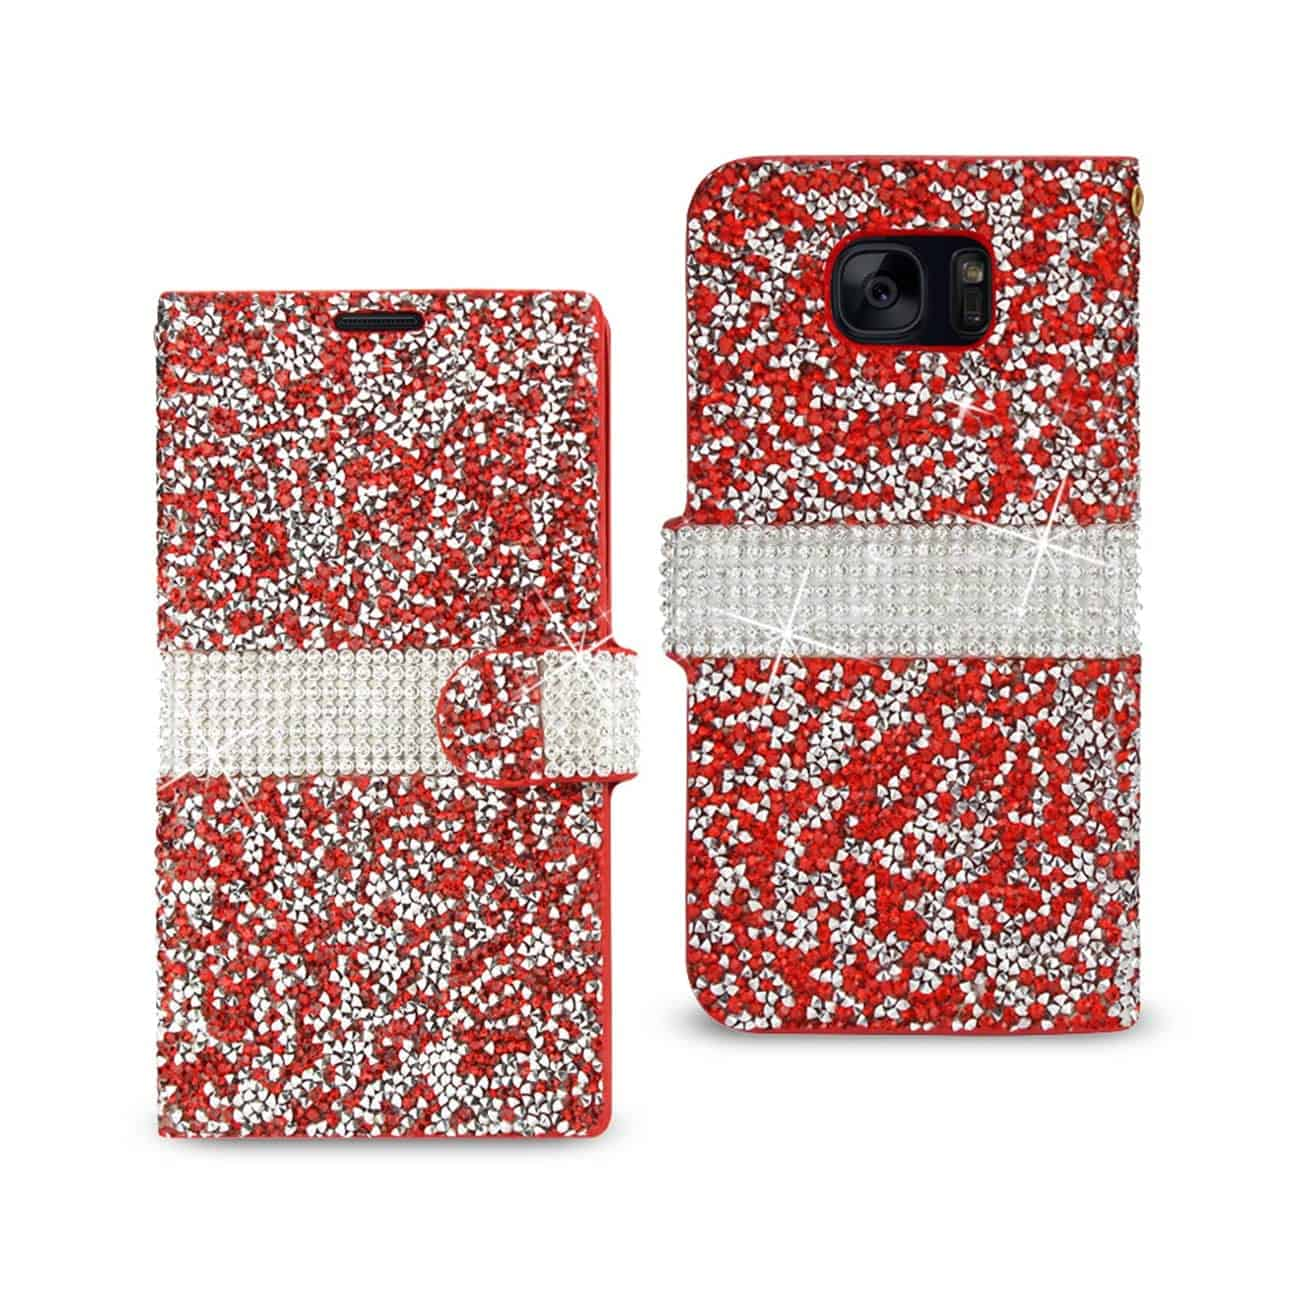 SAMSUNG GALAXY S7 EDGE JEWELRY RHINESTONE WALLET CASE IN RED